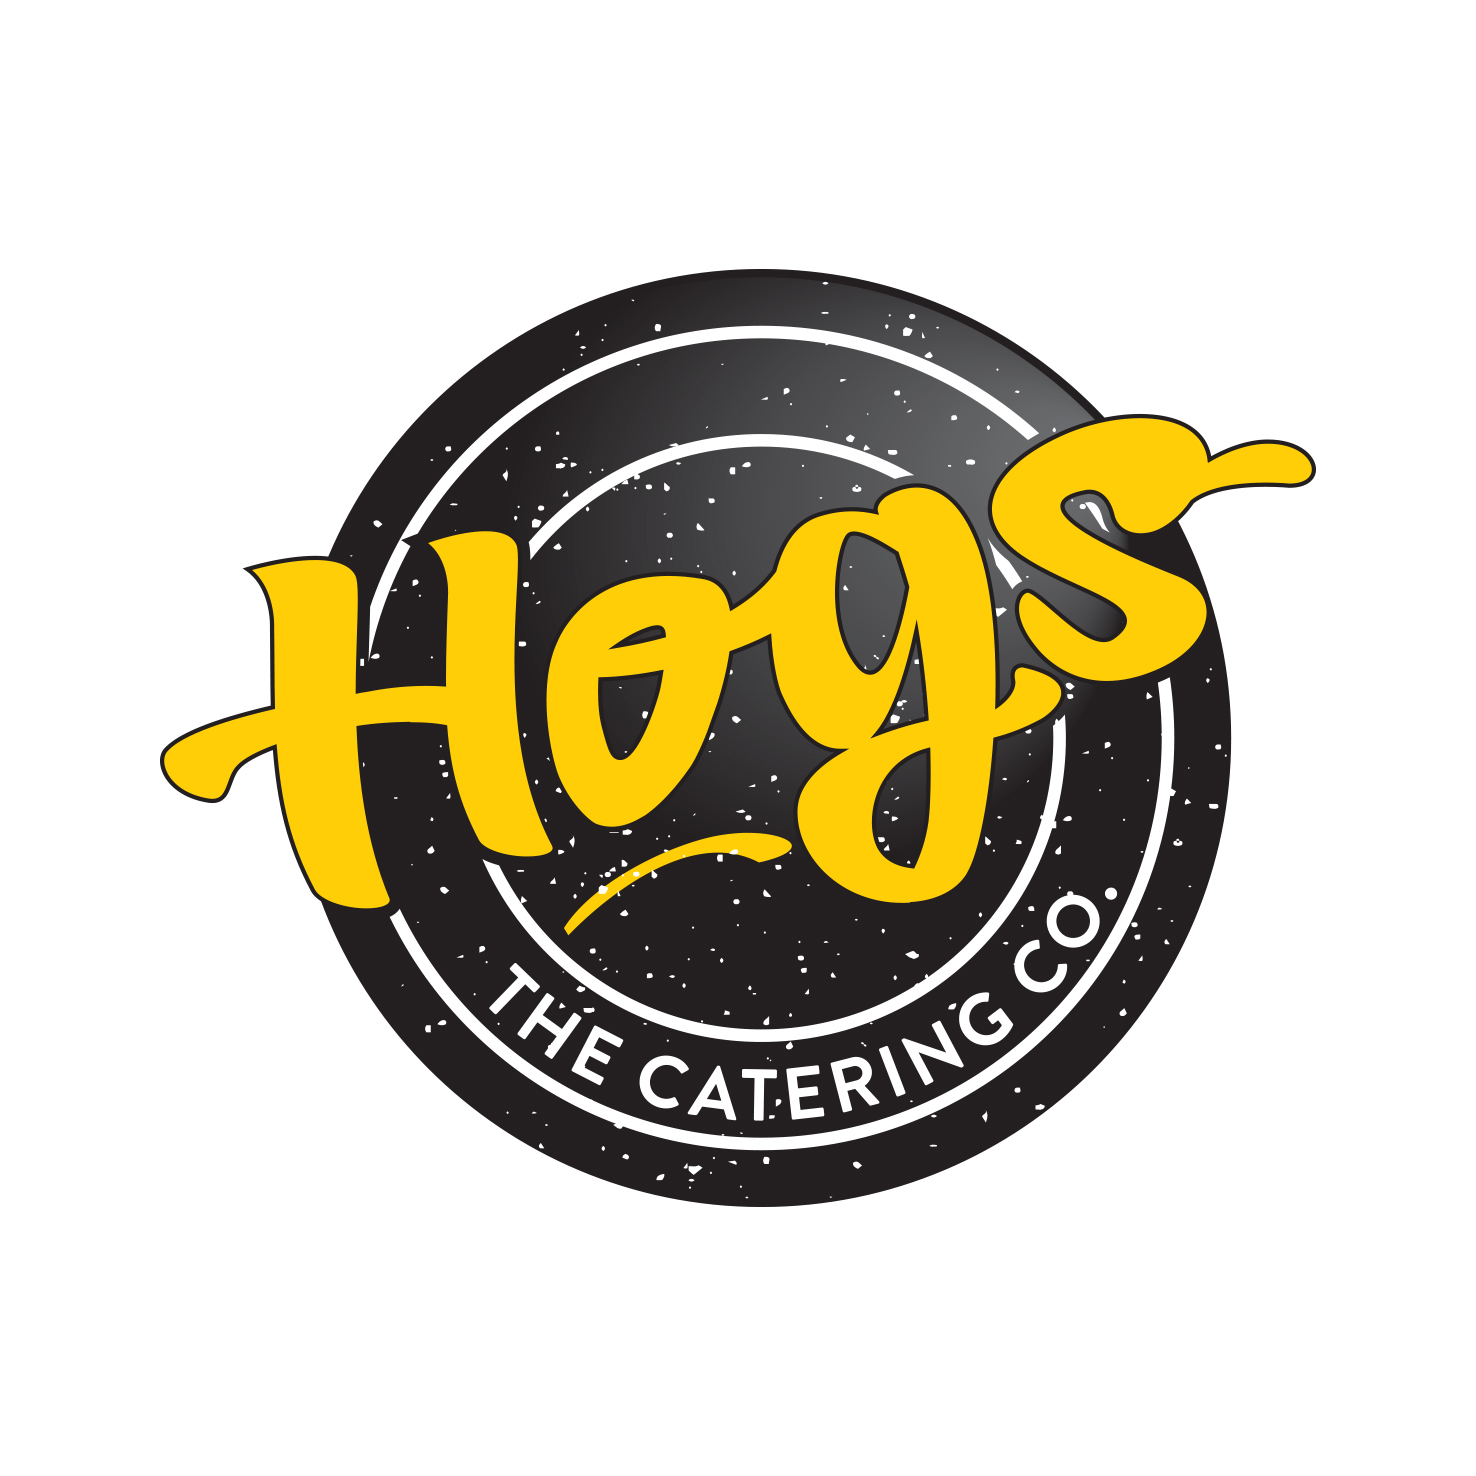 Hogs               The Catering Co.